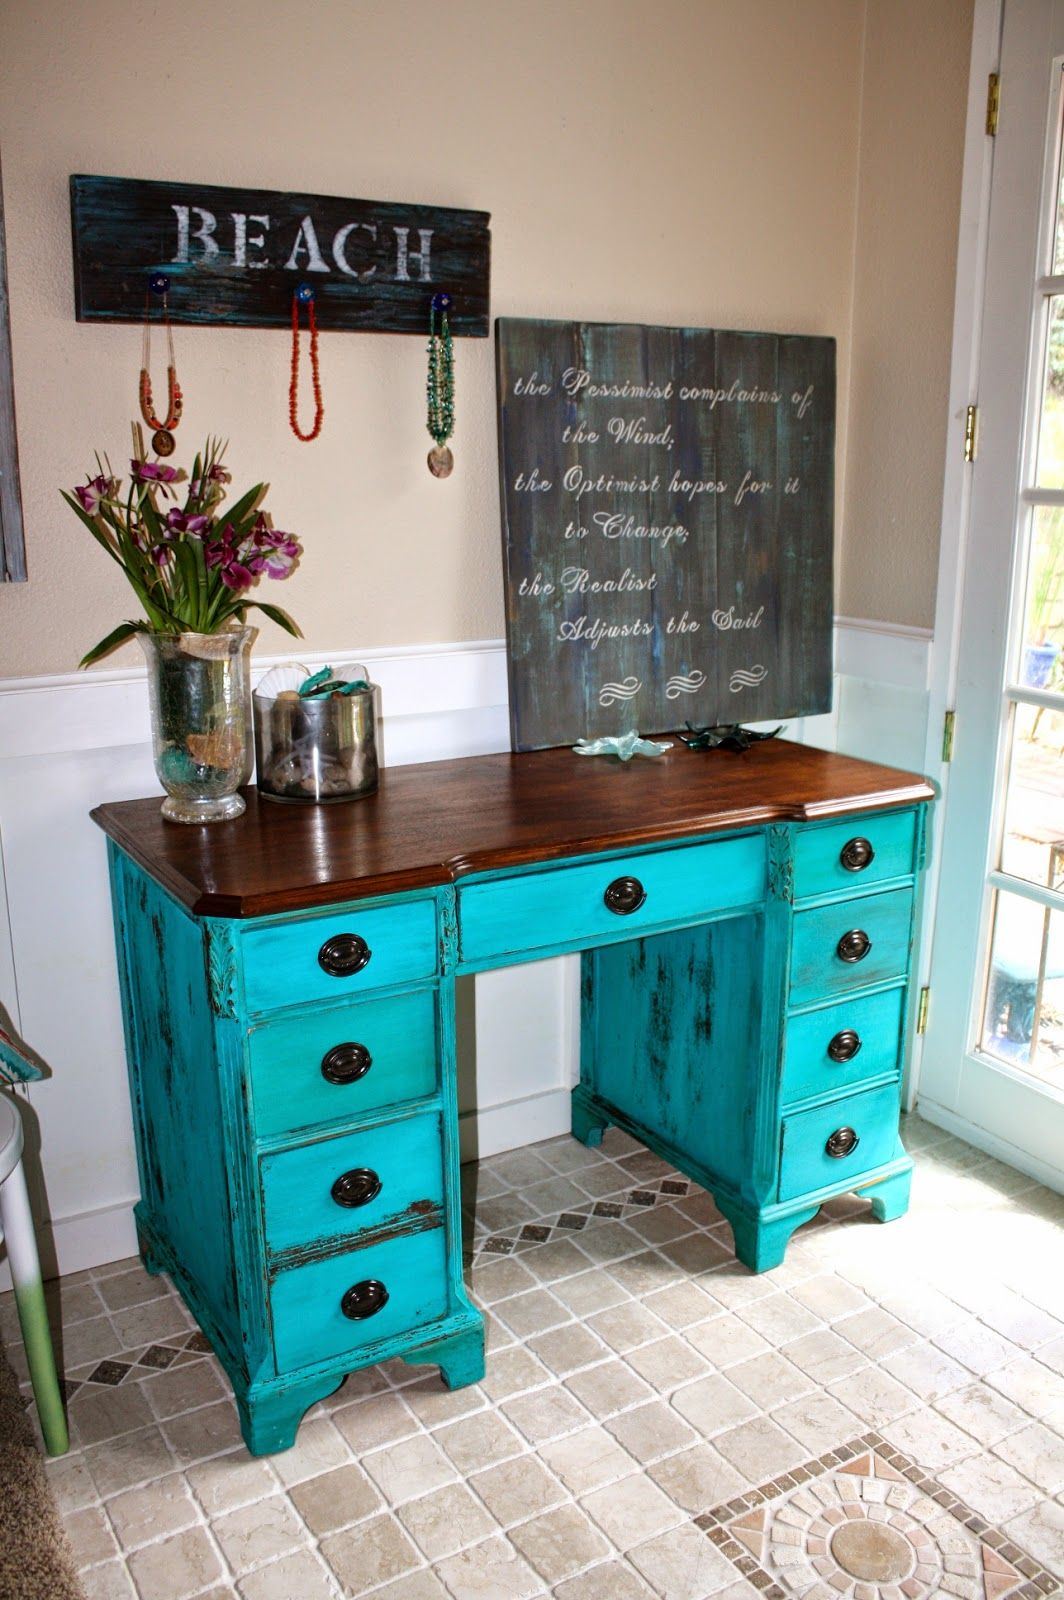 Best 25+ Turquoise Painted Furniture Ideas On Pinterest | Distressed Wood  Furniture, Distressing Wood And Distressed Wood